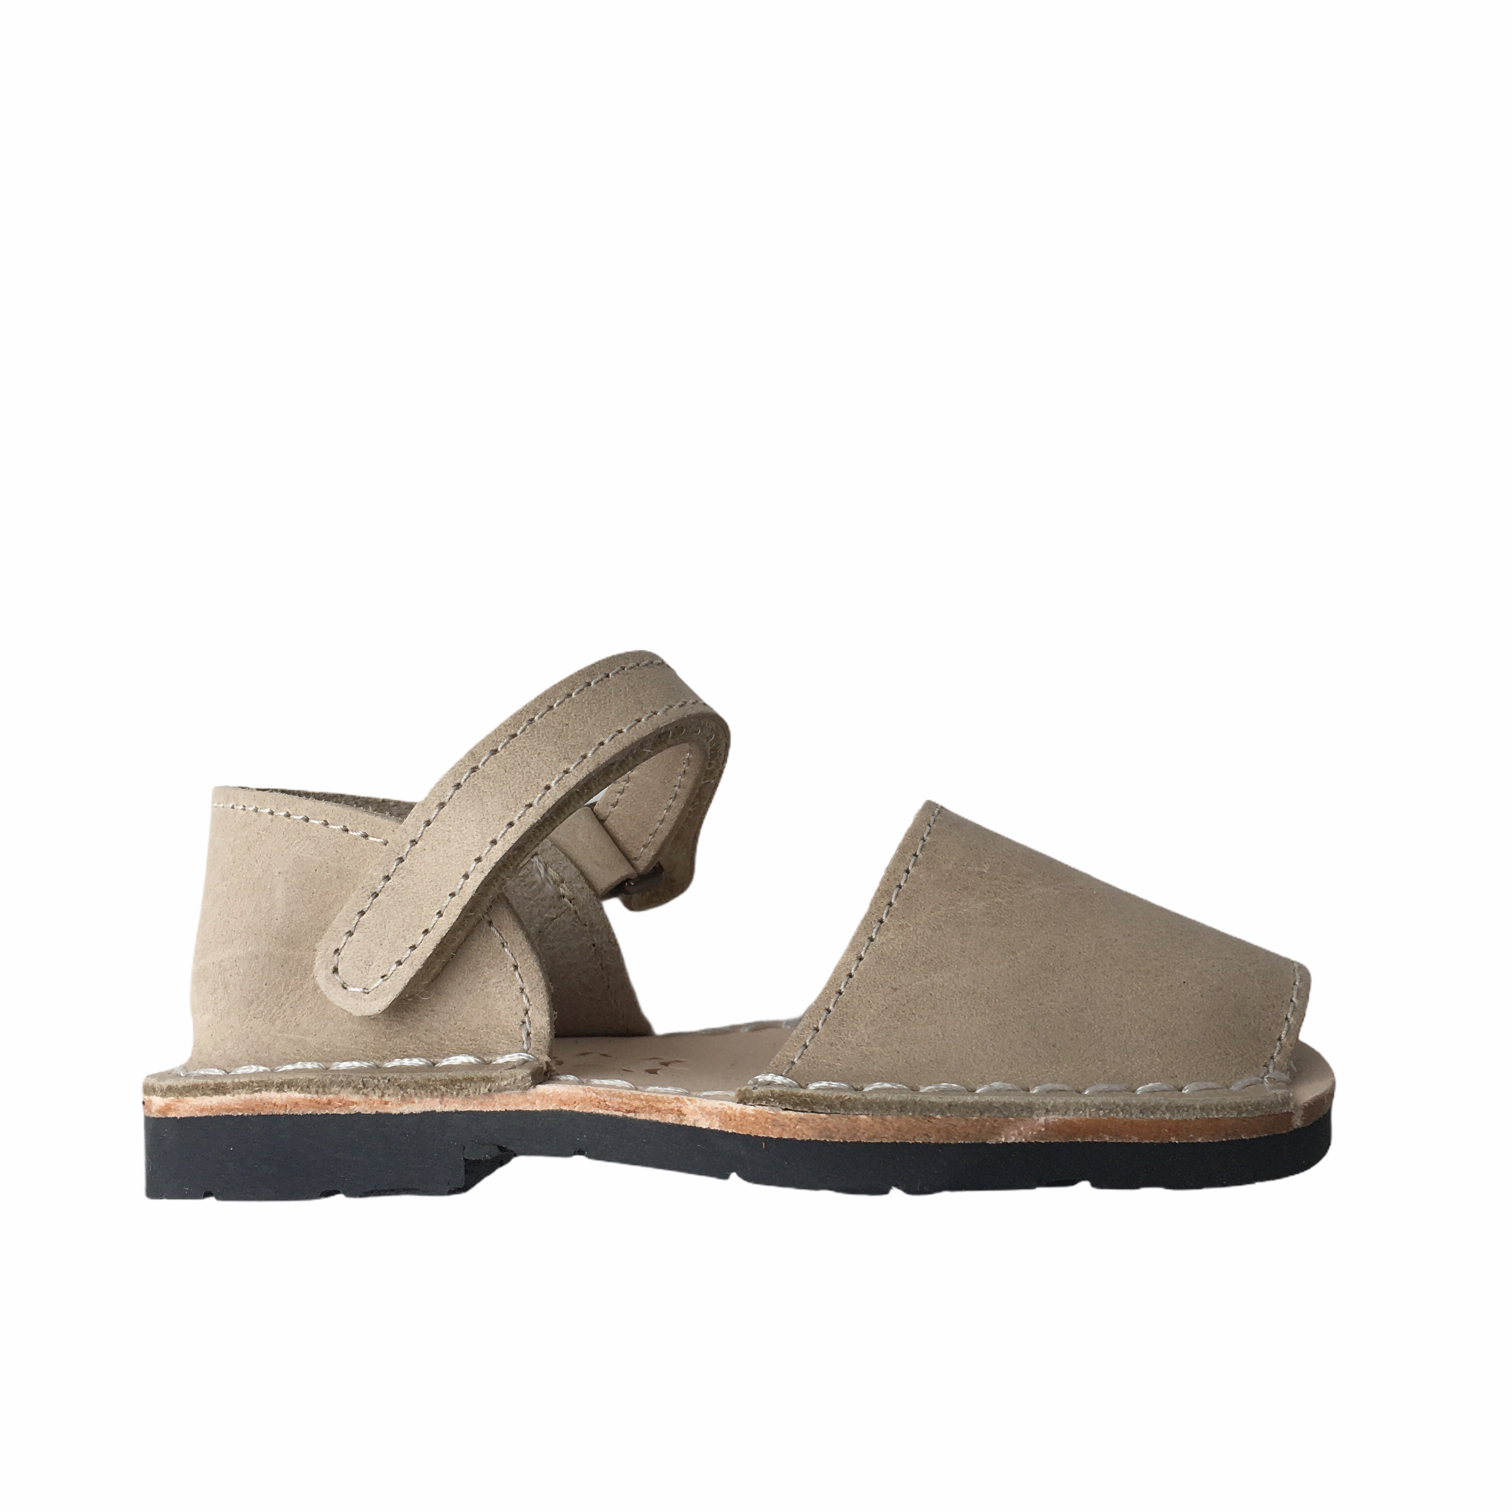 Pons  leather avarca sandal child BOSQUE - sand beige - 22 to 25